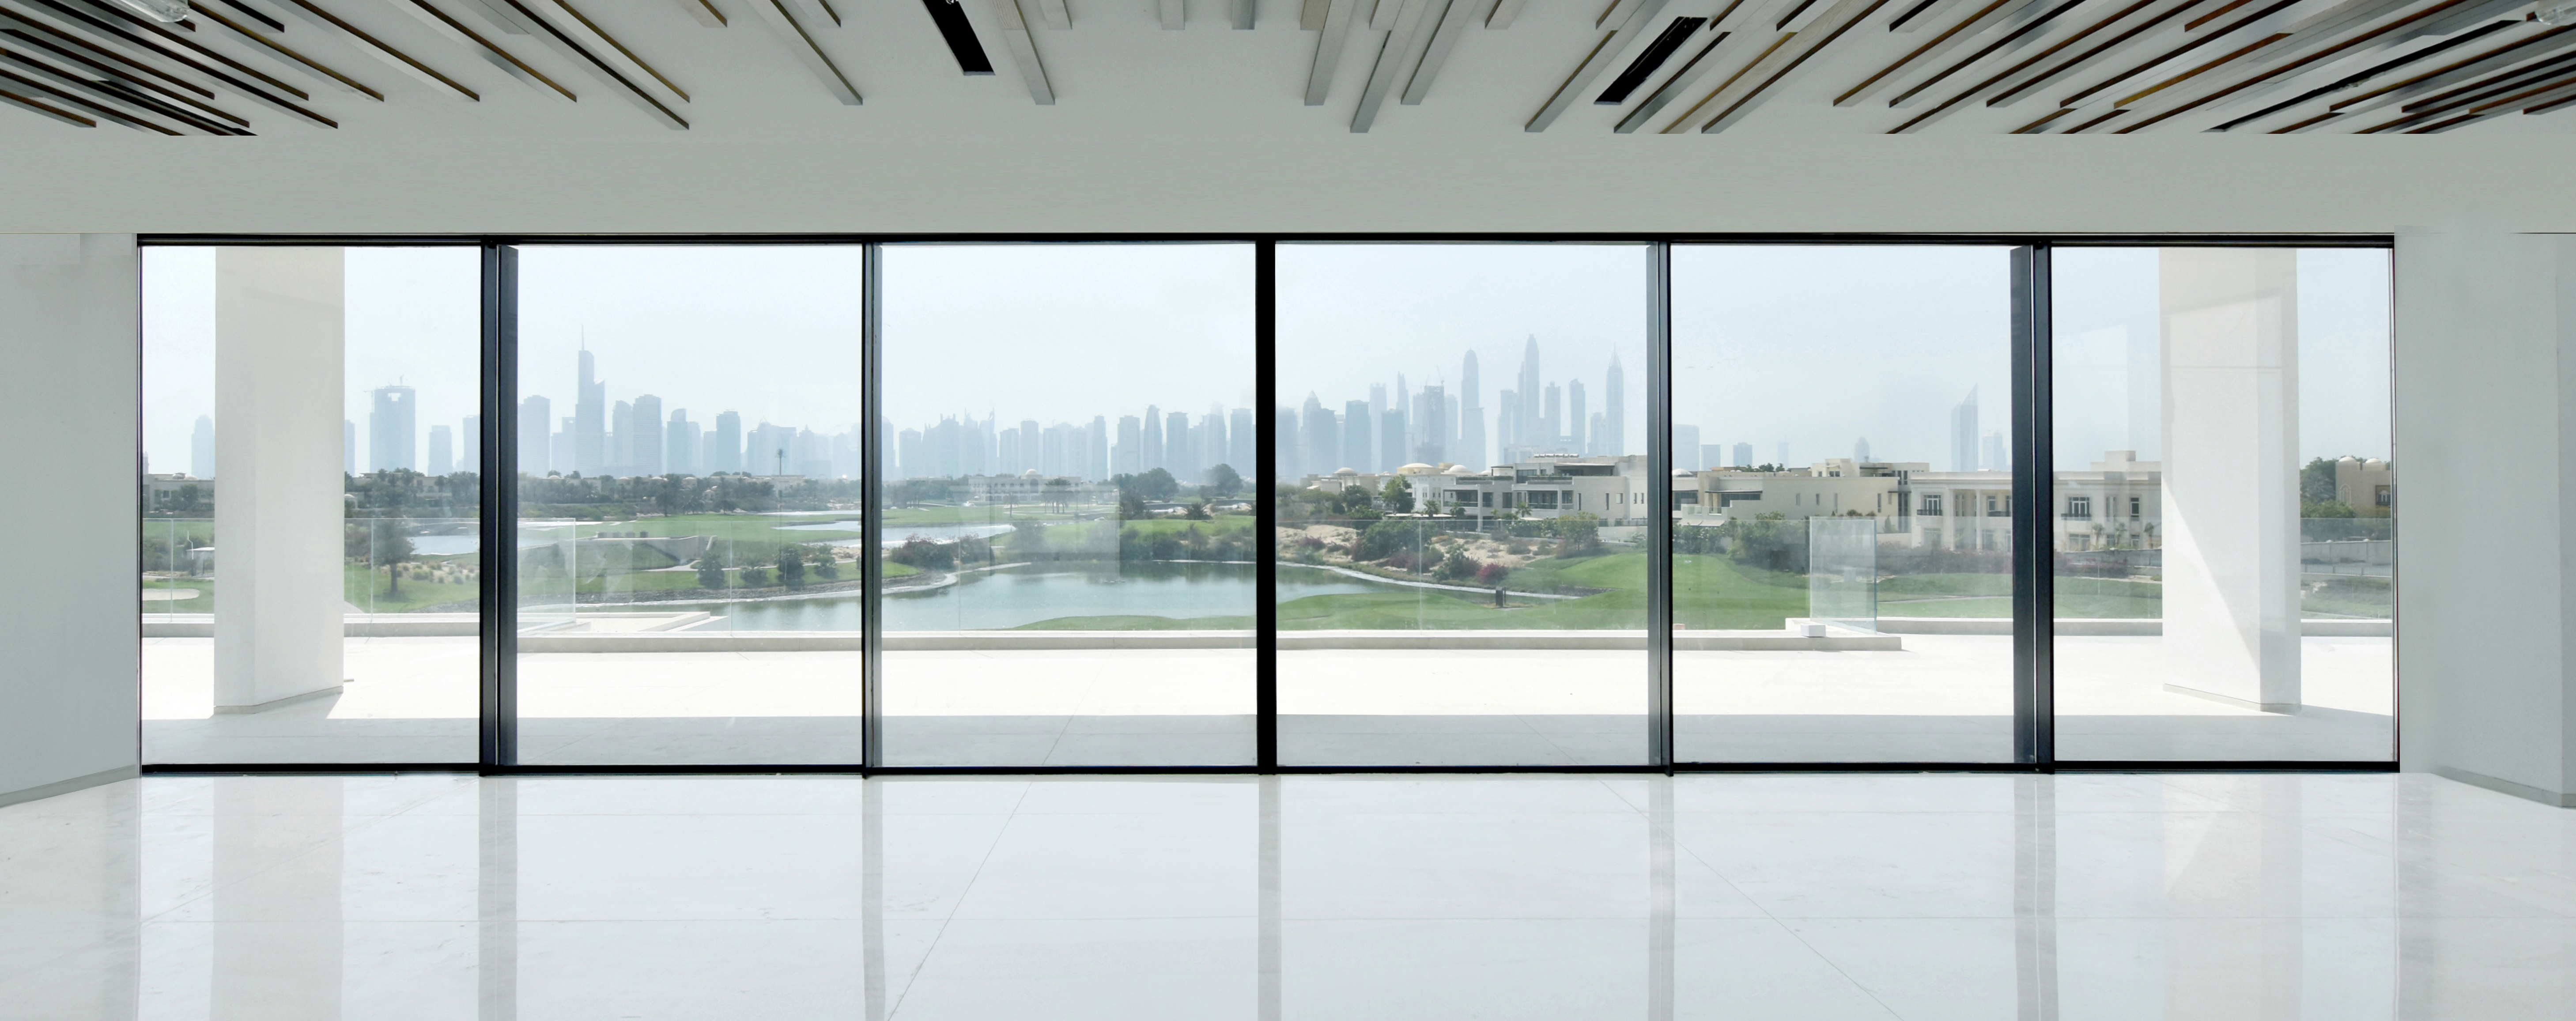 Euro Systems - Gracili Minimal Sliding System - Banner